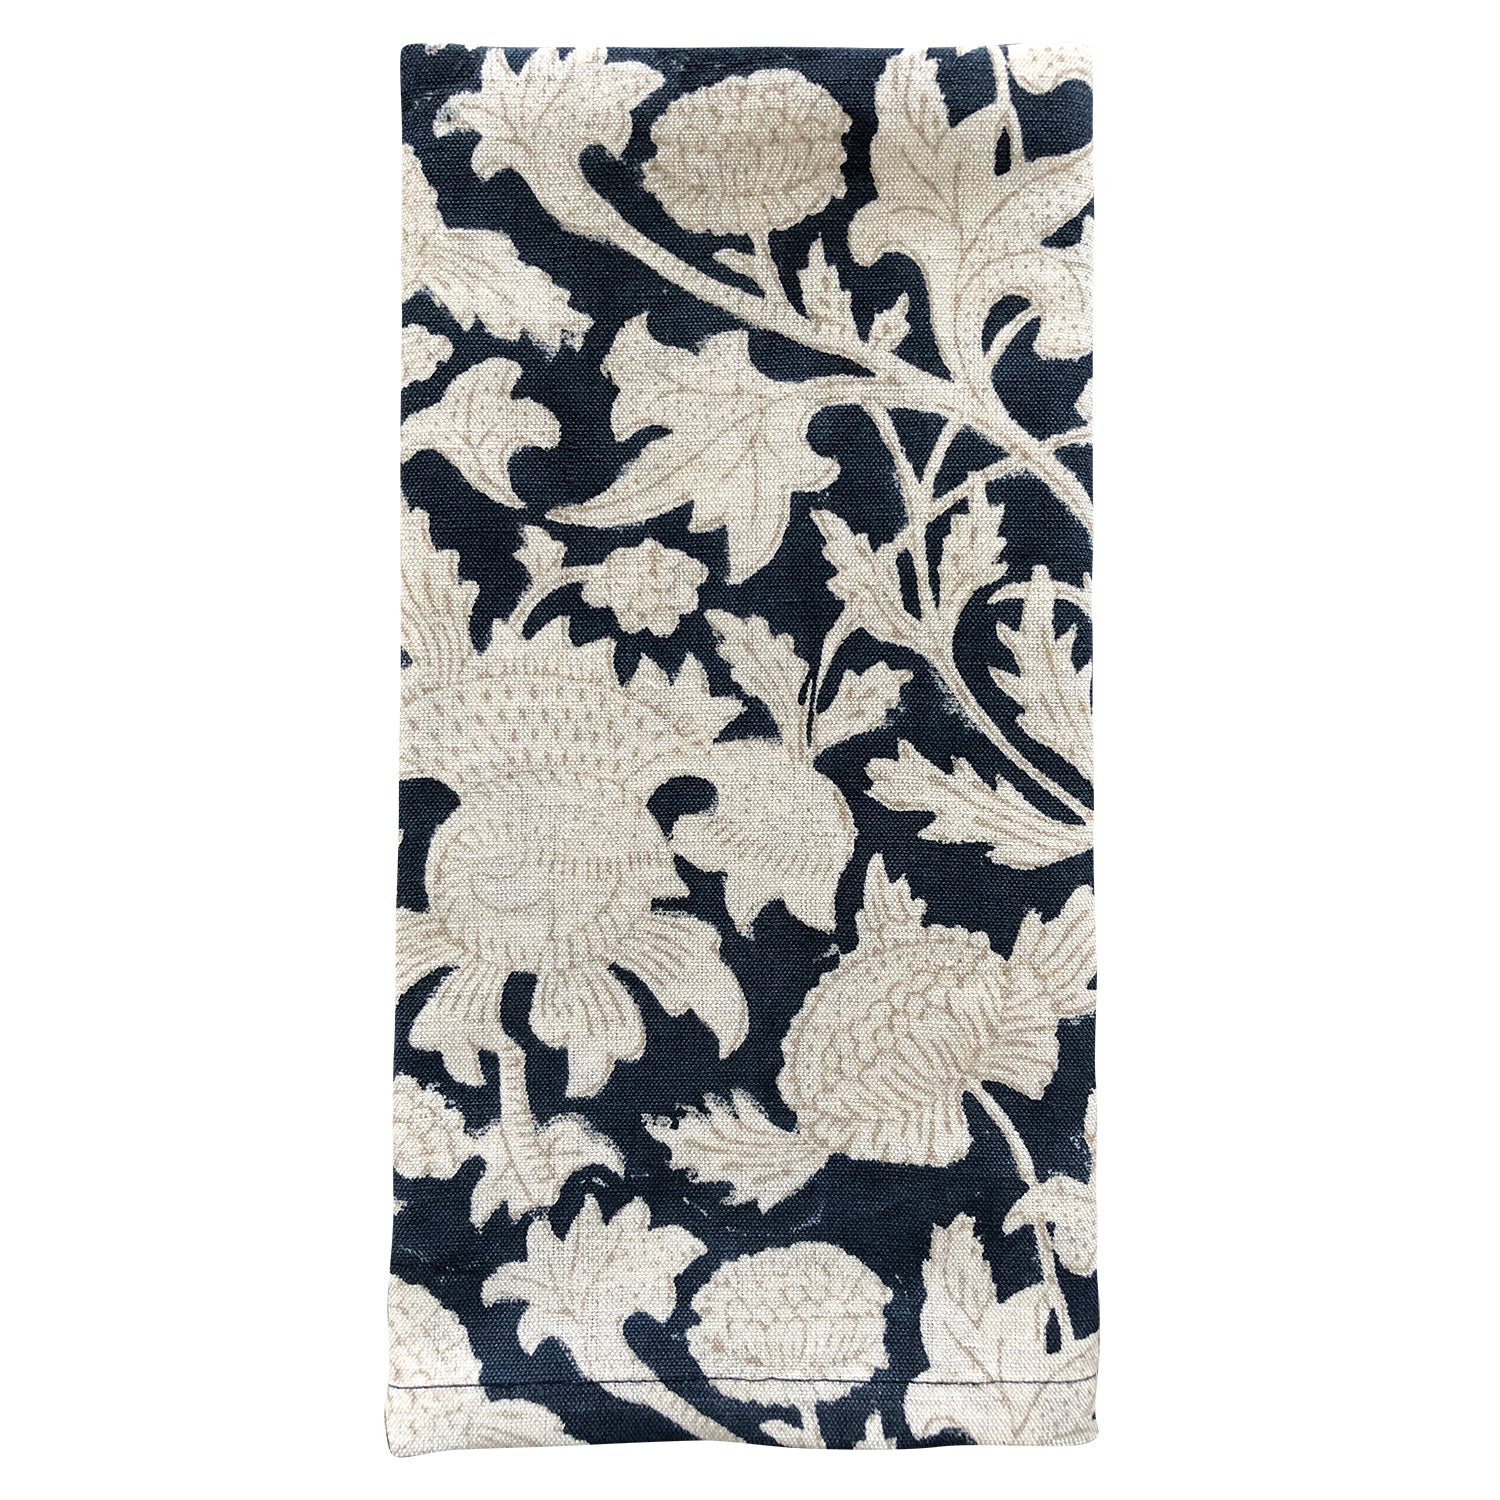 Whitby Avery Napkin (Set of 4)